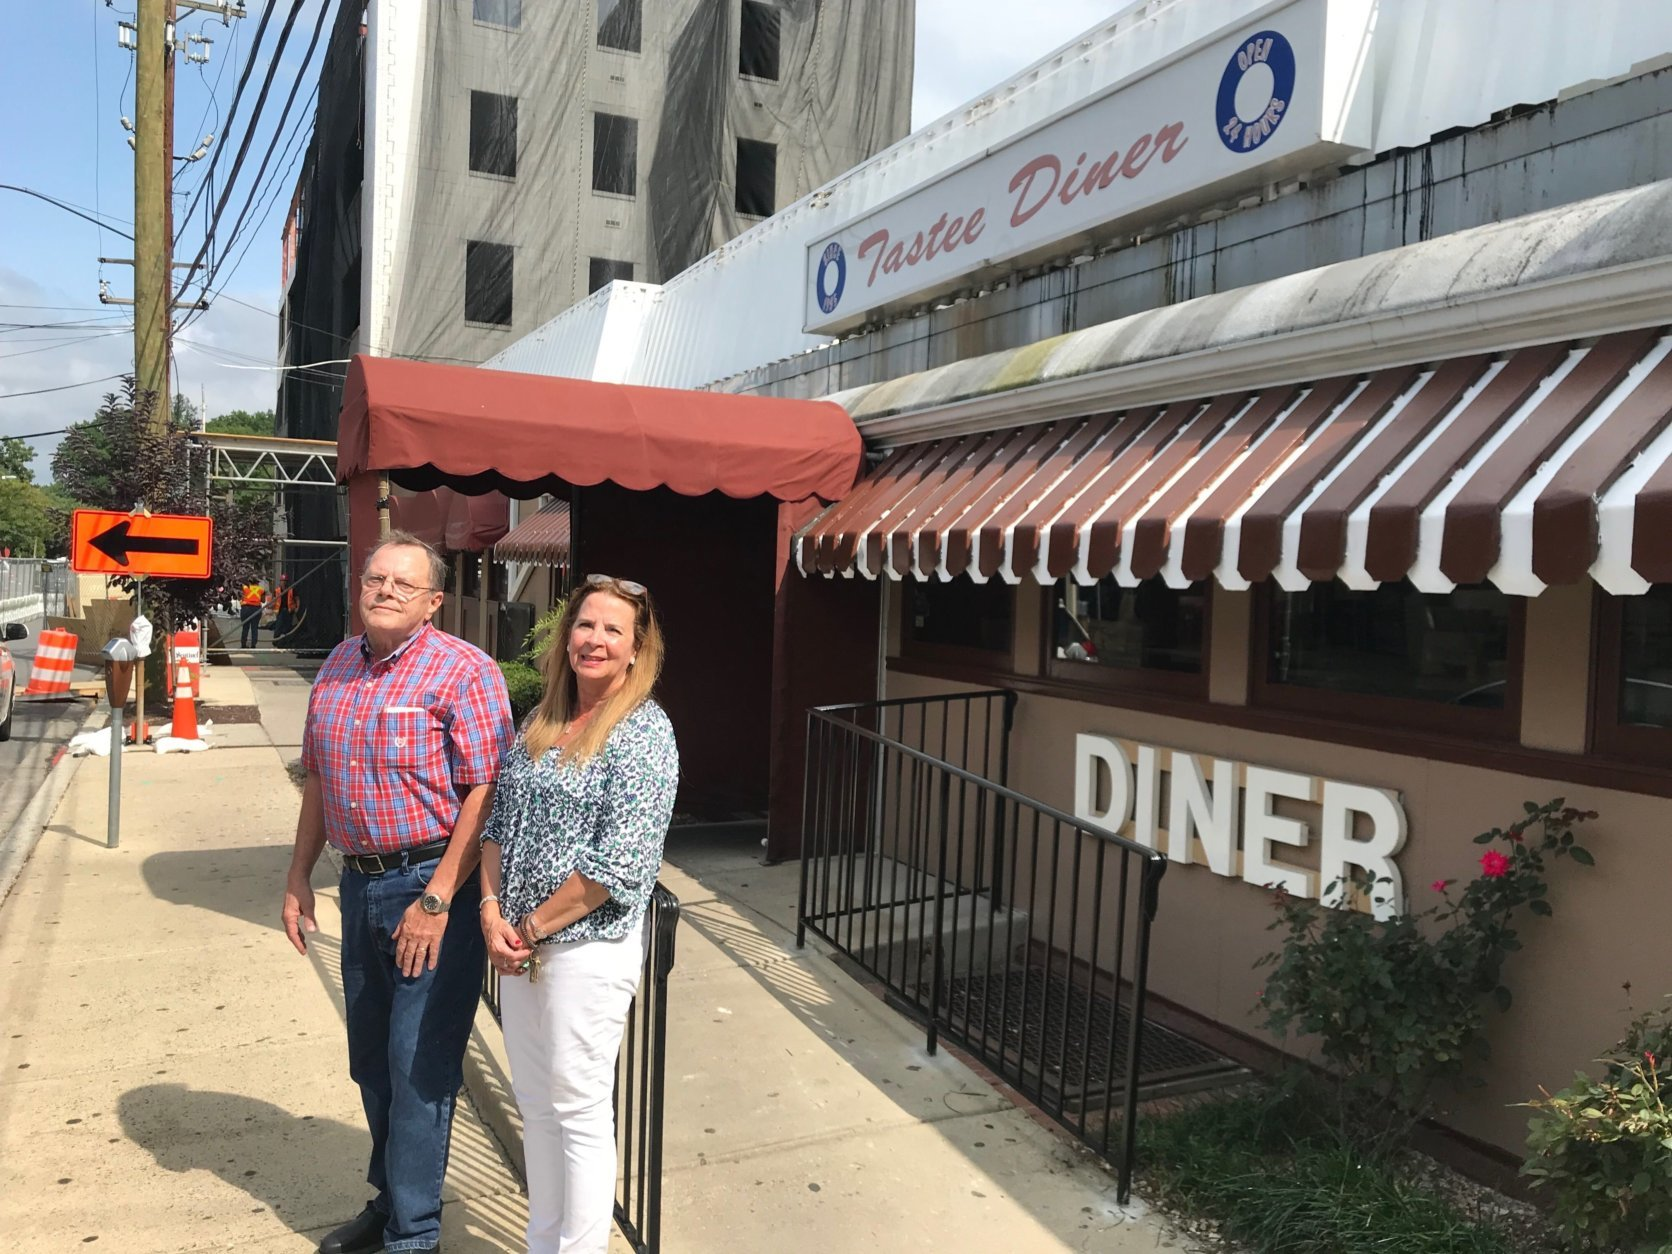 Tastee Diner owner Gene Wilkes and manager Beth Cox are worried about business at their decades-old eatery. (WTOP/Dick Uliano)